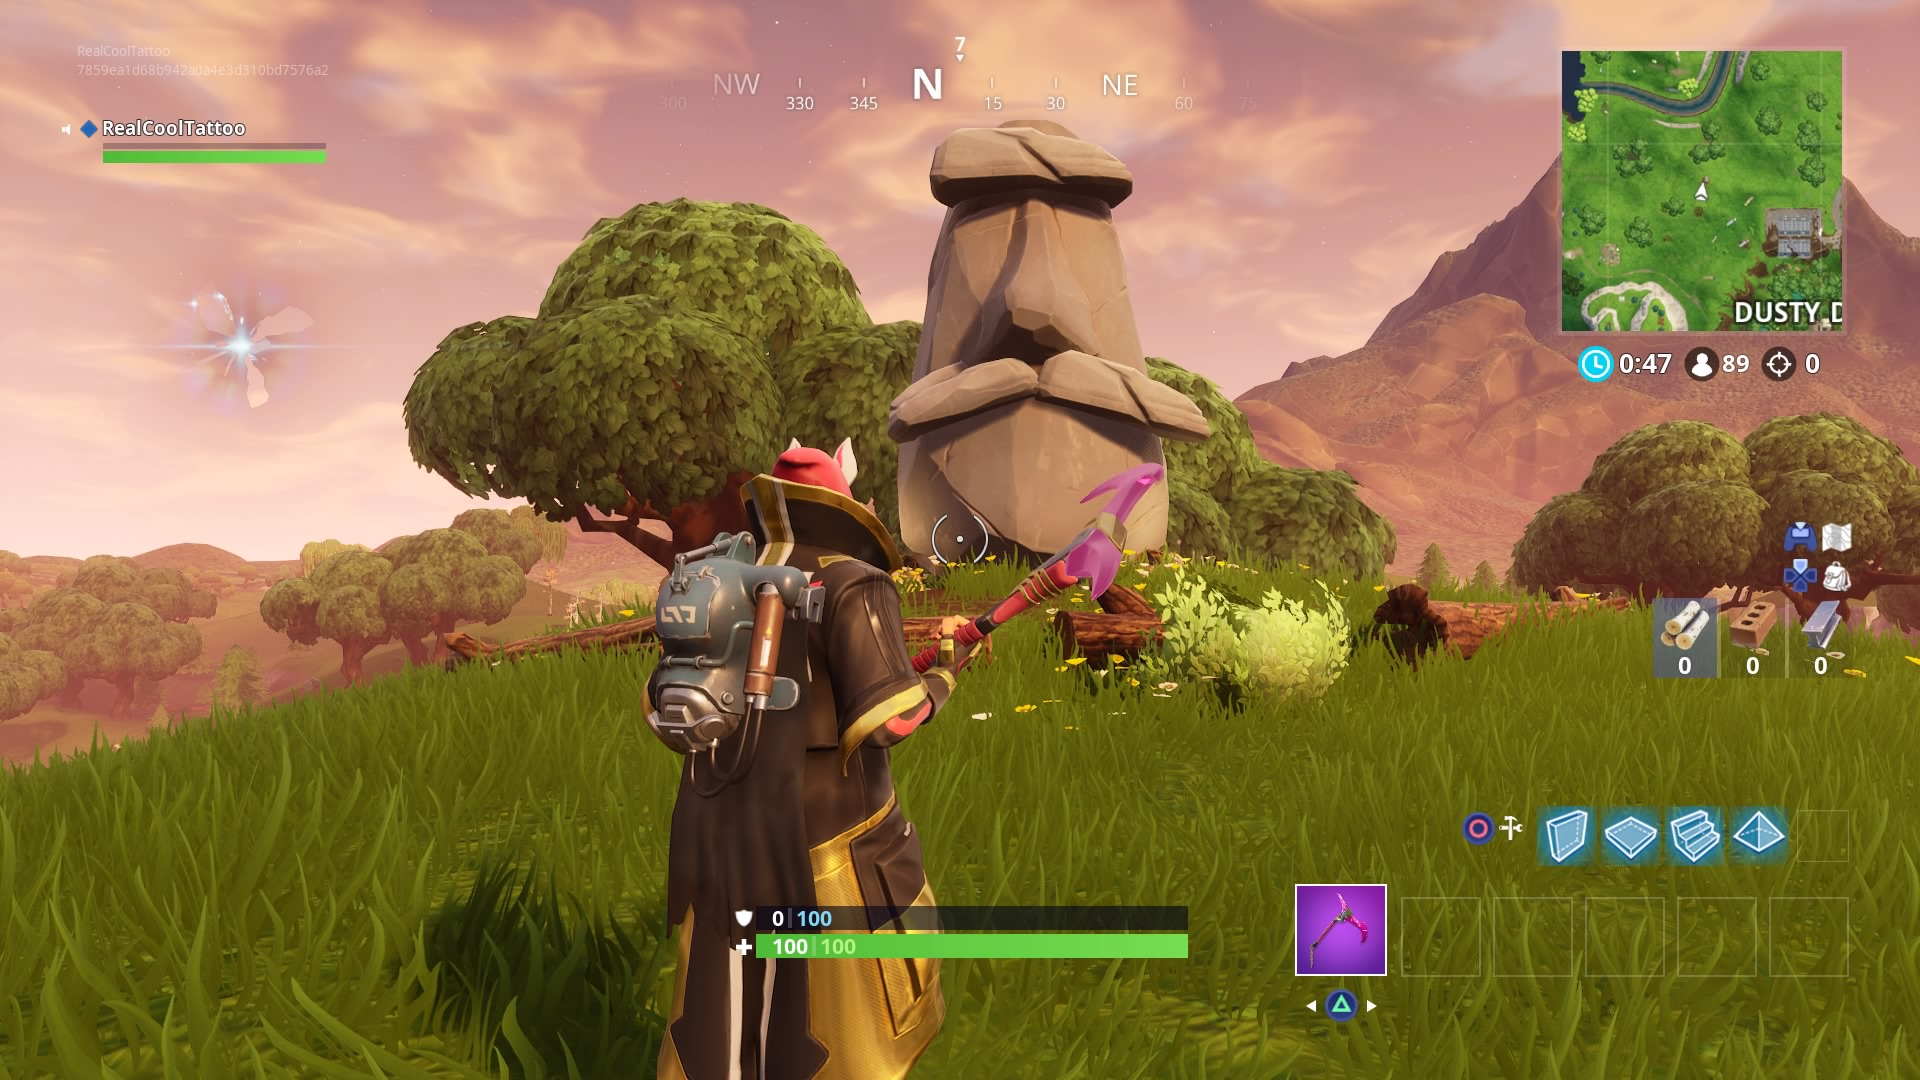 - where the stone heads are looking fortnite